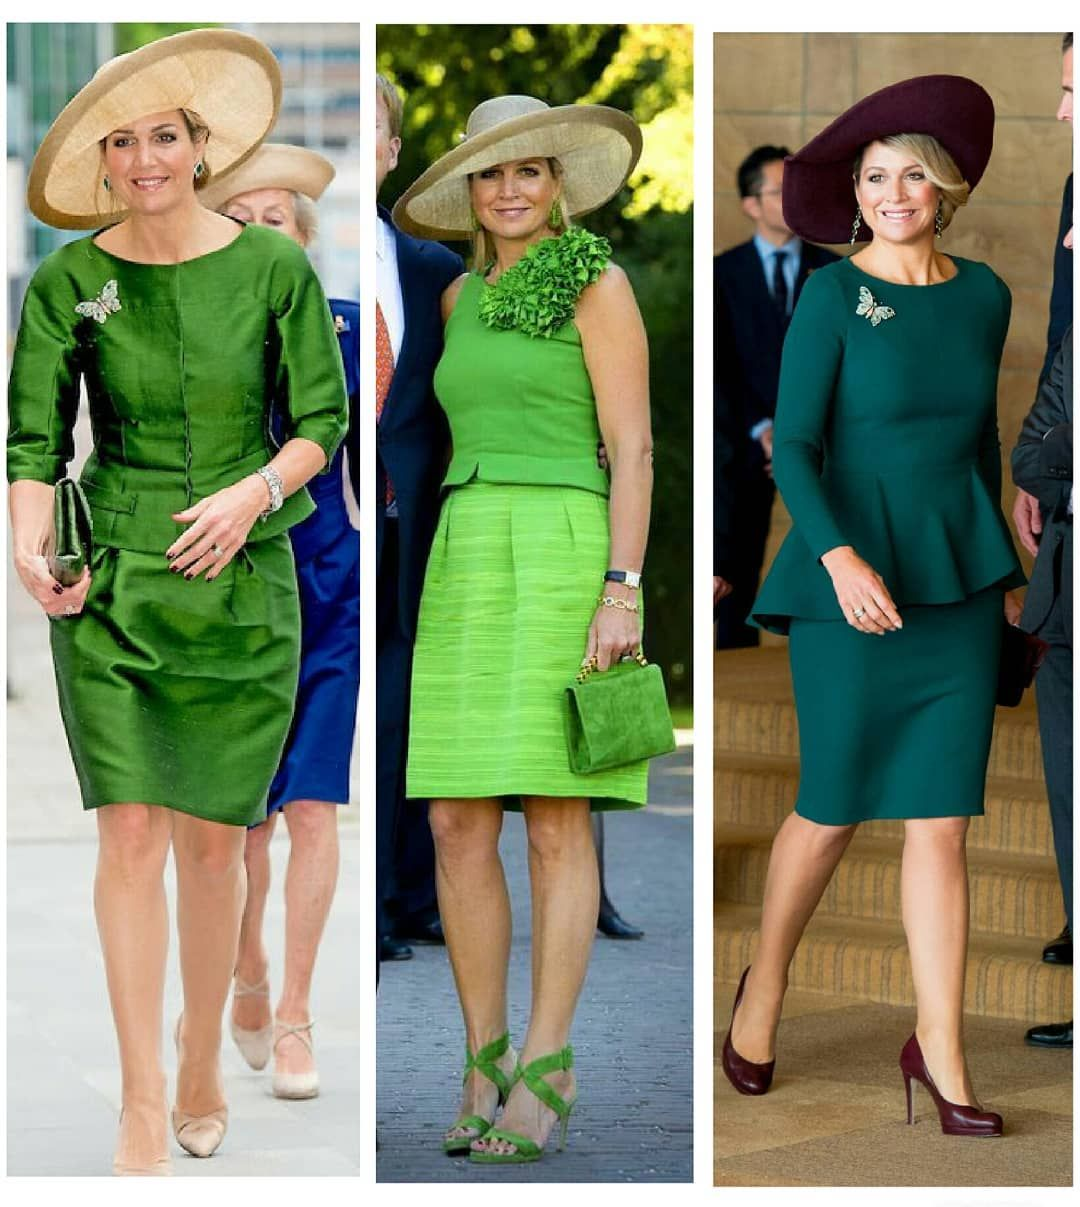 Hmqueenmaxima On Instagram Queen Maxima S Green Outfits 2 2 Which Is Your Favorite Outfit Queenmaxima K Green Outfit Favorite Outfit Outfits [ 1207 x 1080 Pixel ]